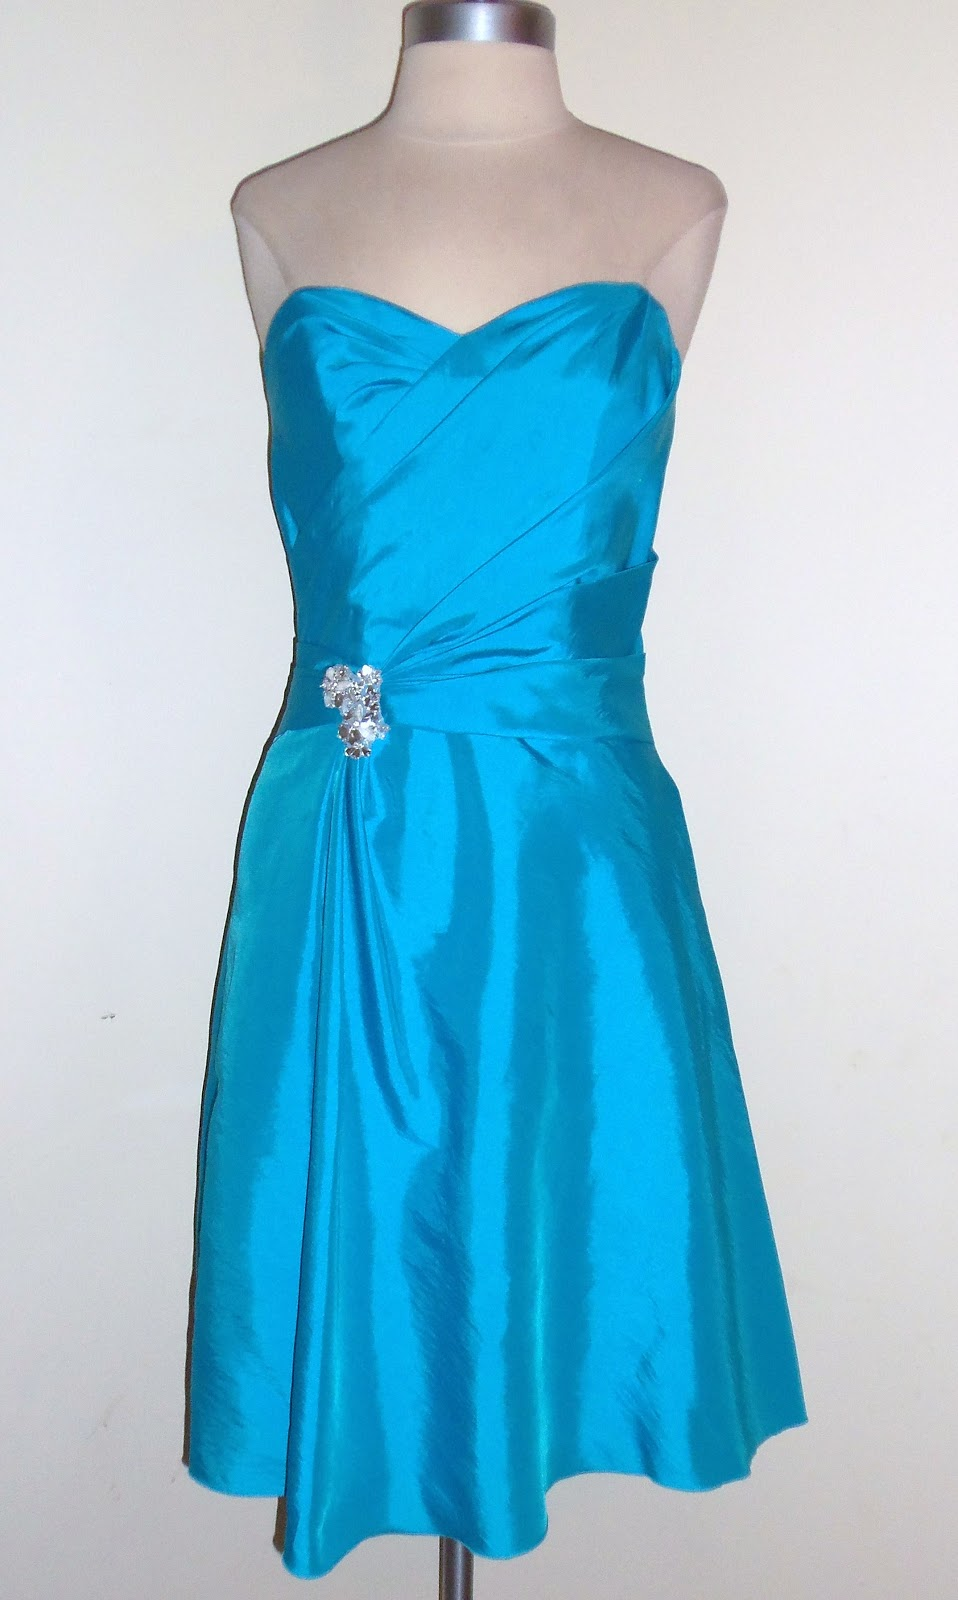 Thrifty Chic Shop: Non-Tradional Prom Dresses Vintage Style